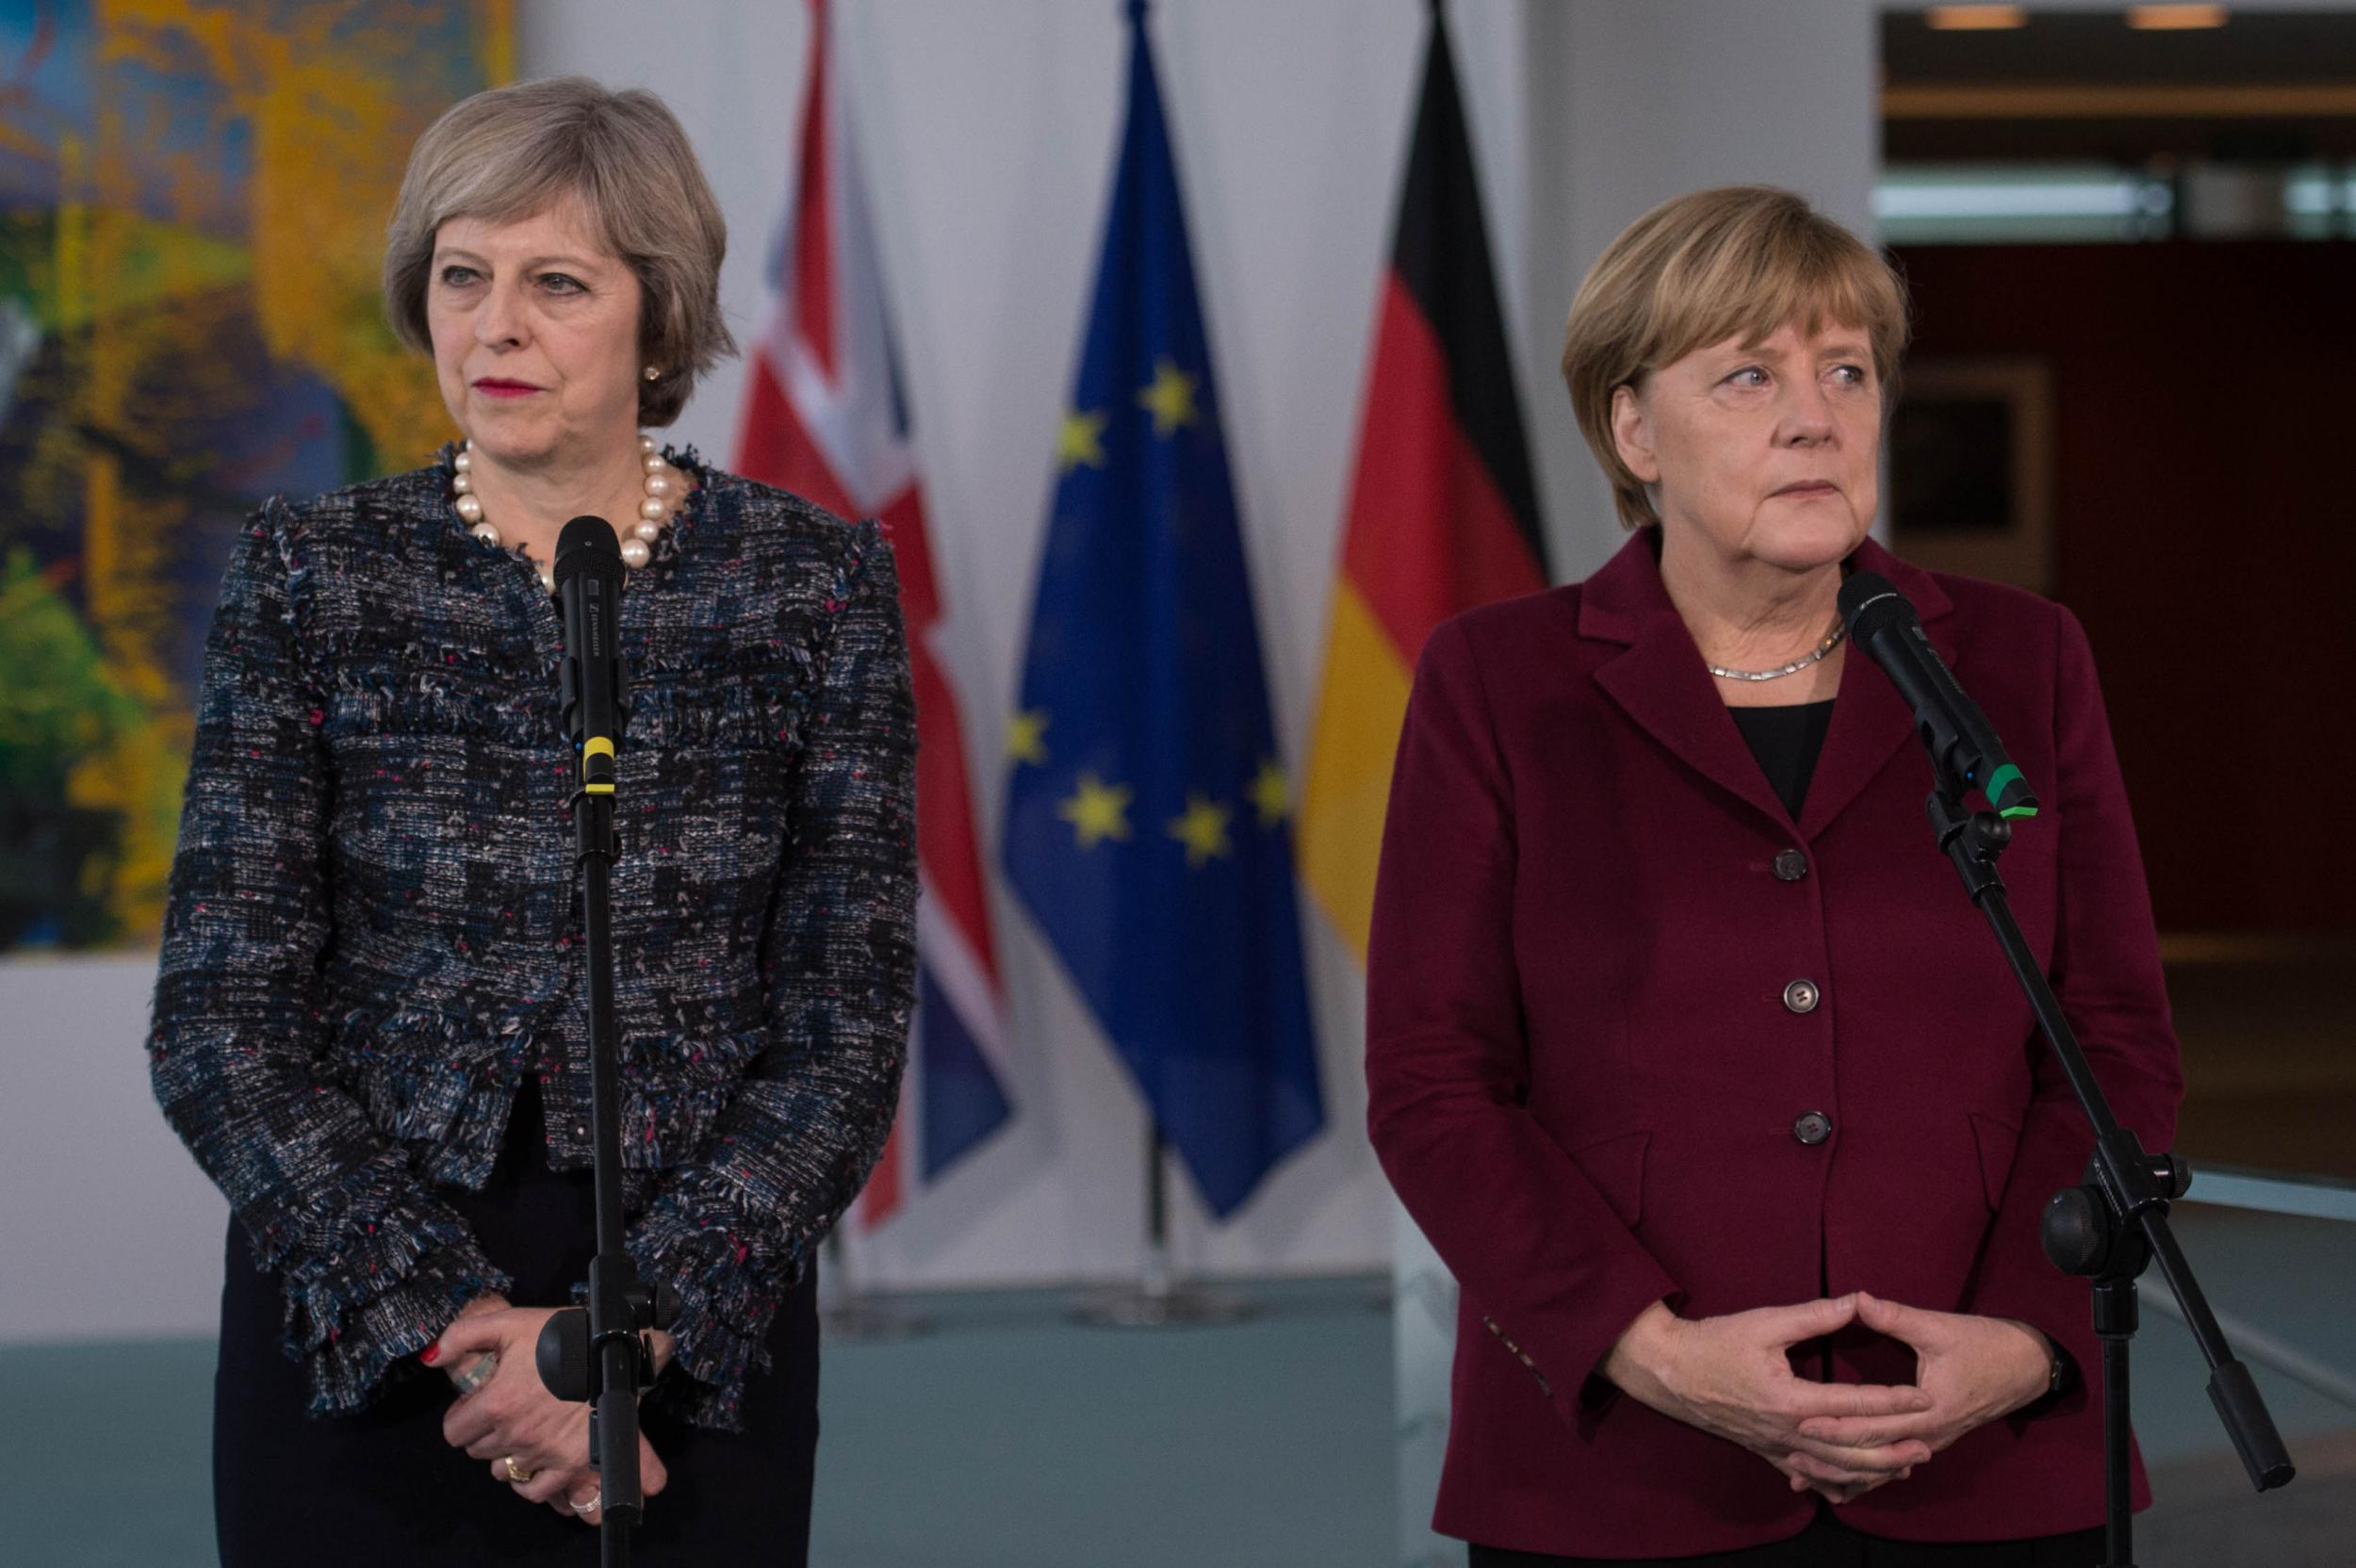 Brexit: Theresa May's call for deal on EU migrant rights 'blocked by Angela Merkel'